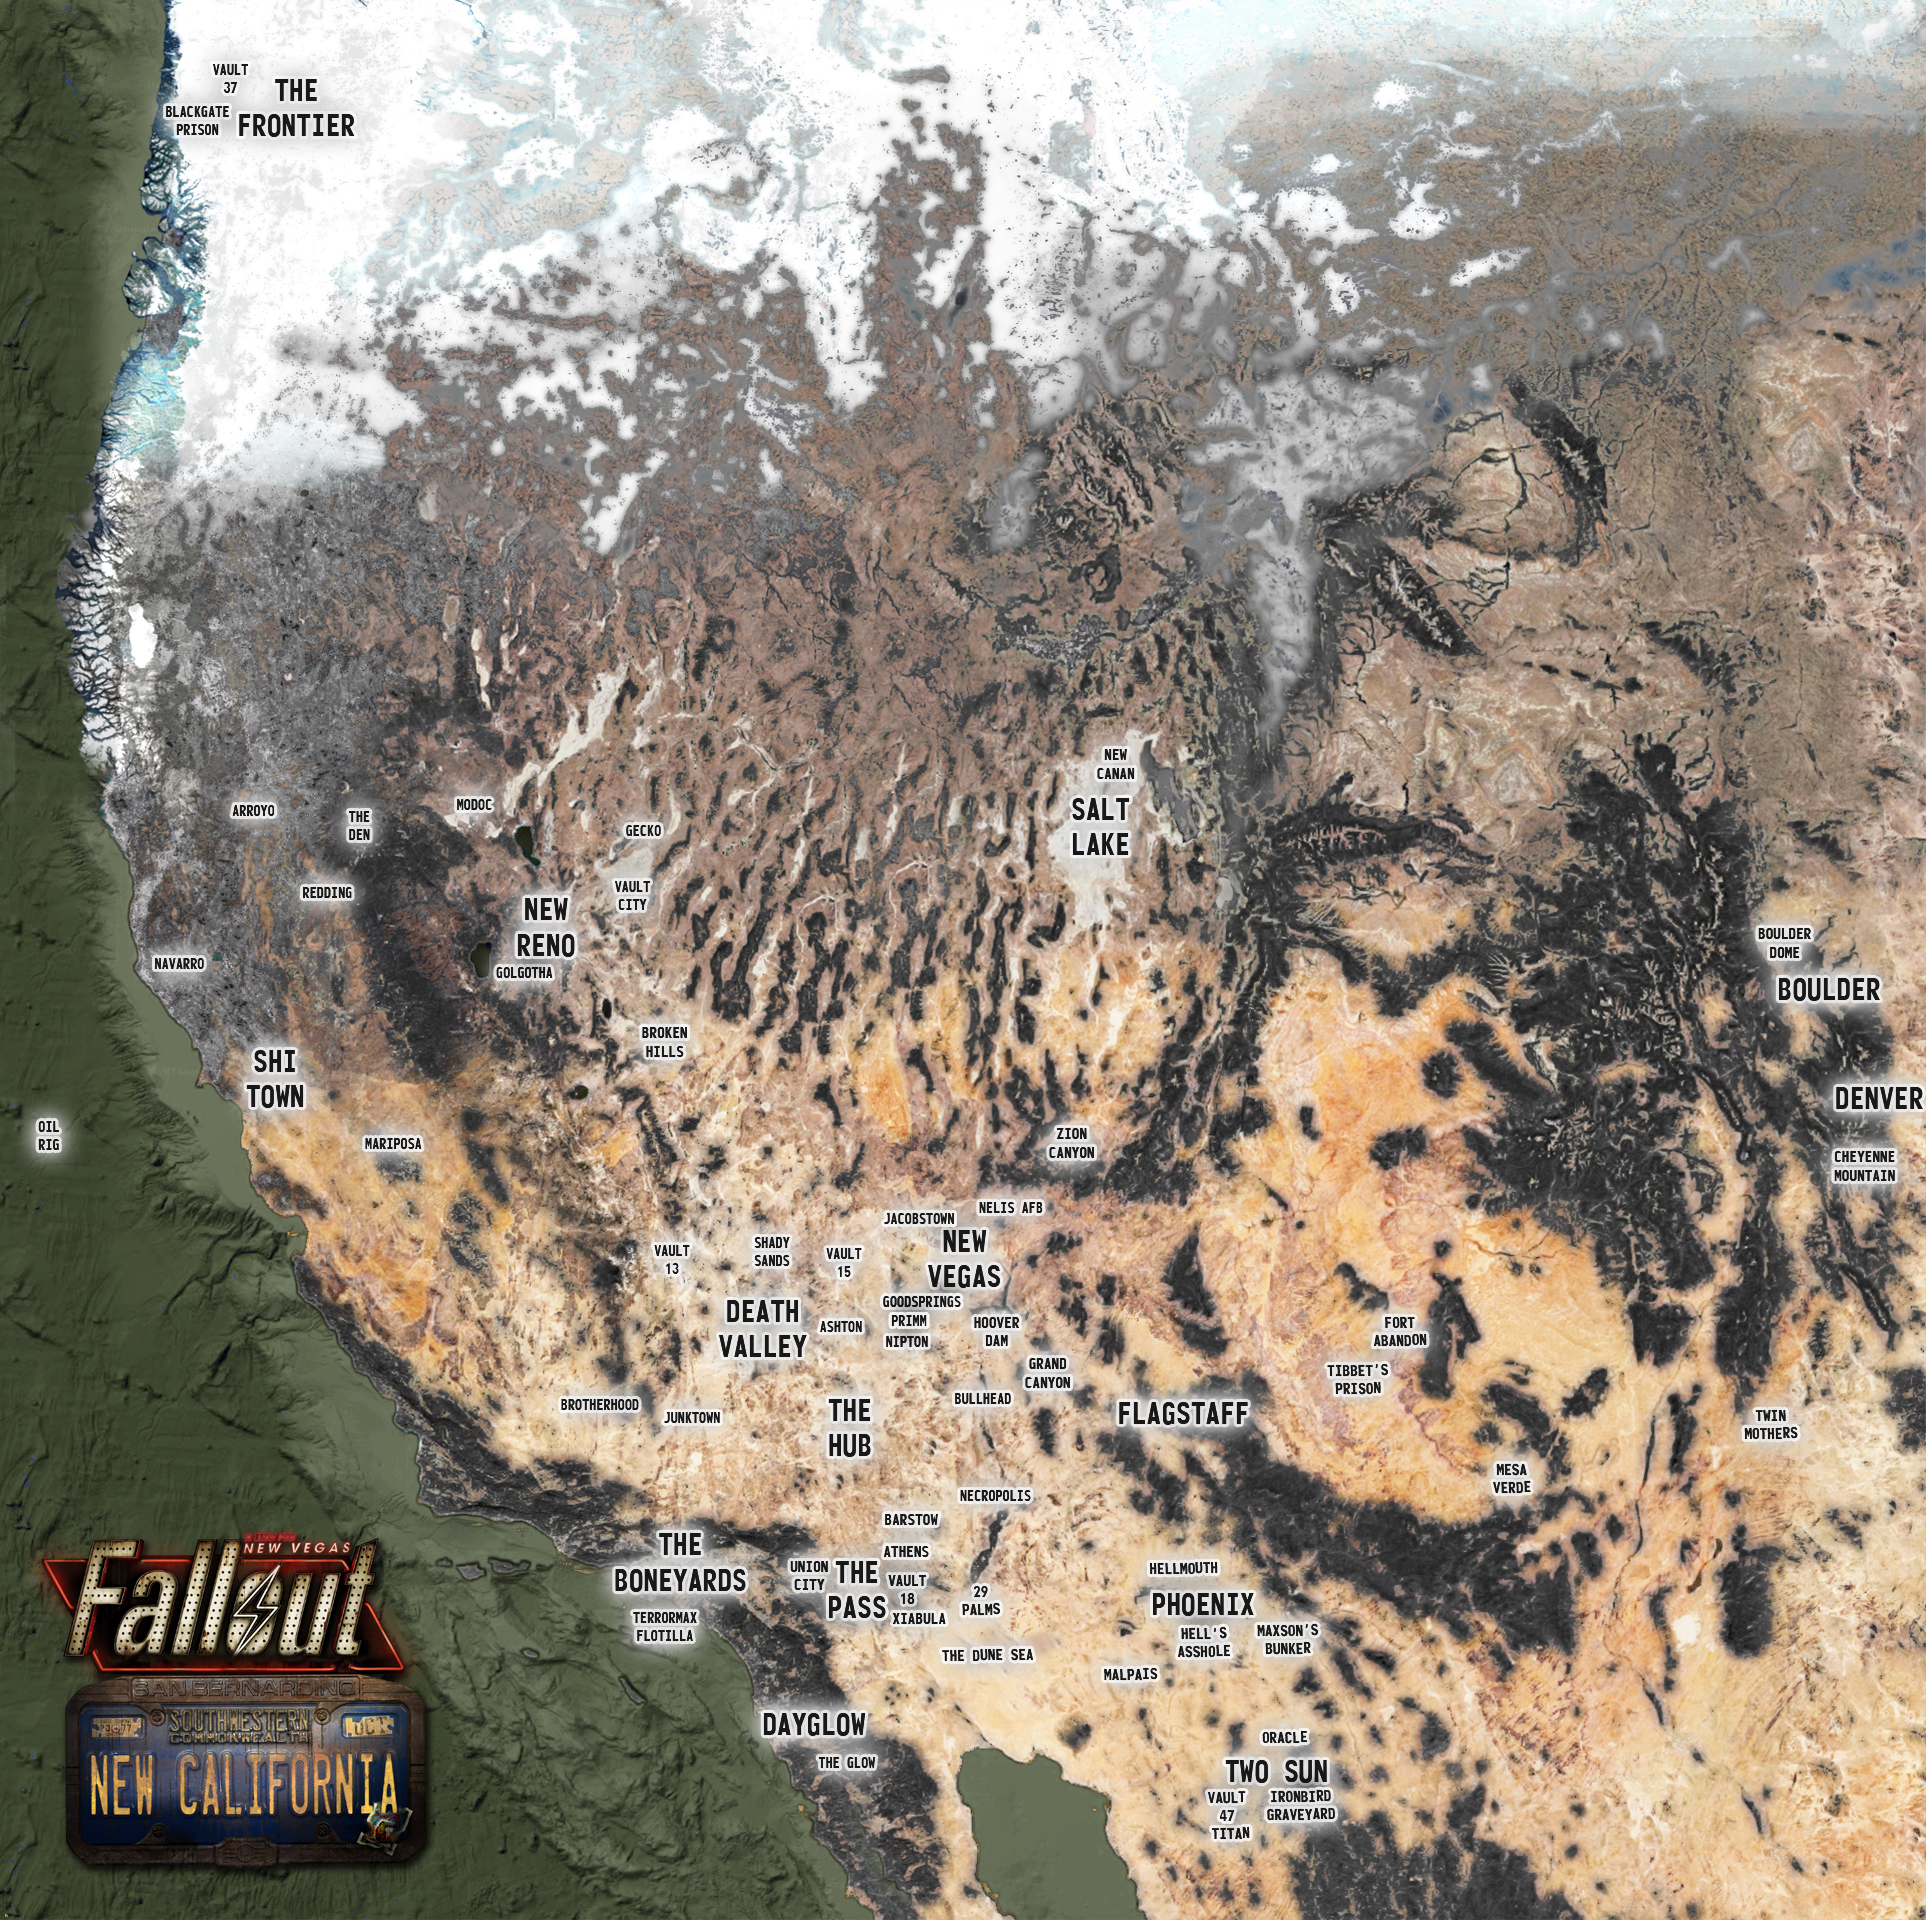 Fallout Las Vegas Map.Fallout World Map 2260 Image Fallout New California Mod For